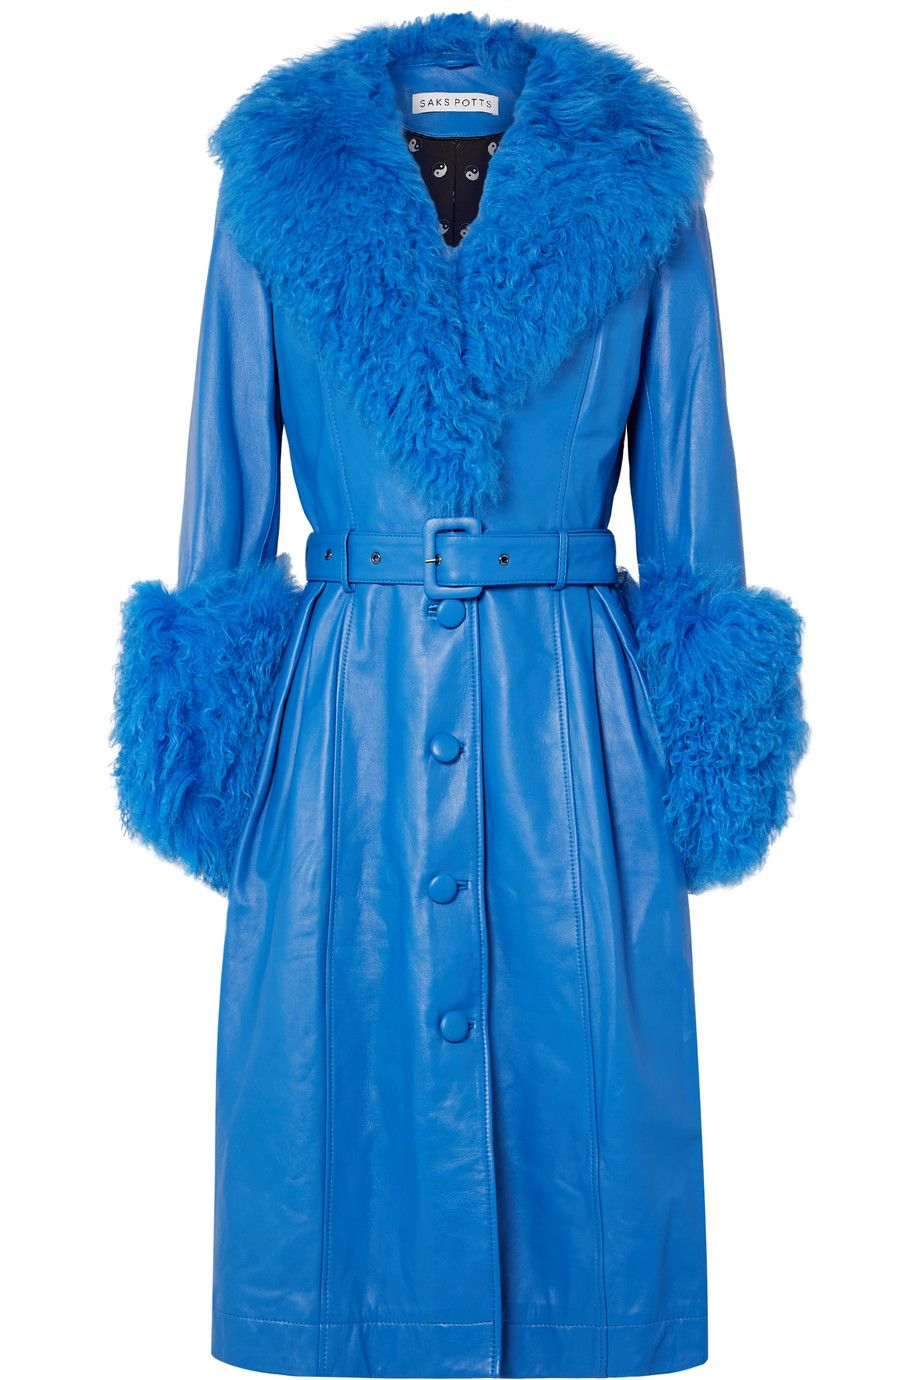 saks-potts-foxy-Foxy-belted-shearling-trimmed-leather-coat-bright-blue